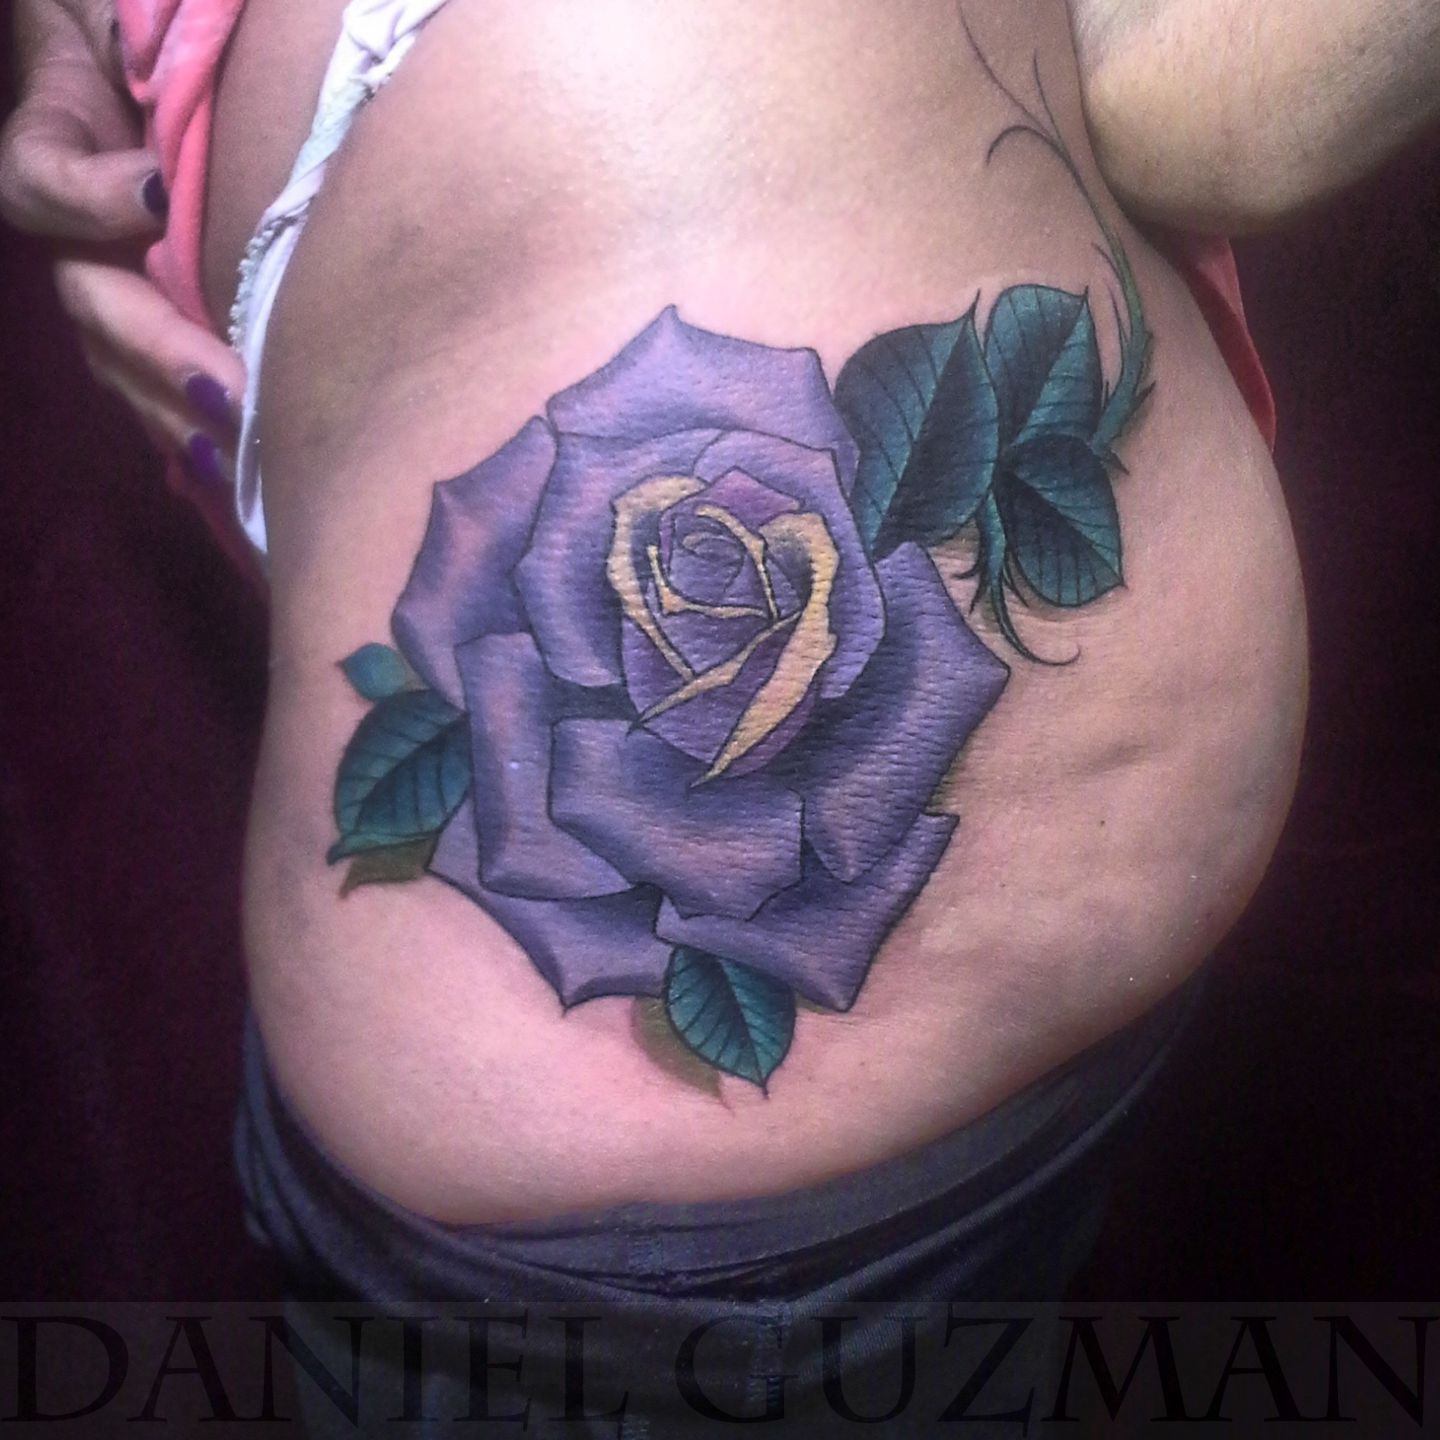 Danielguzmantattoos neo traditional rose rose tattoo for Neo traditional rose tattoo